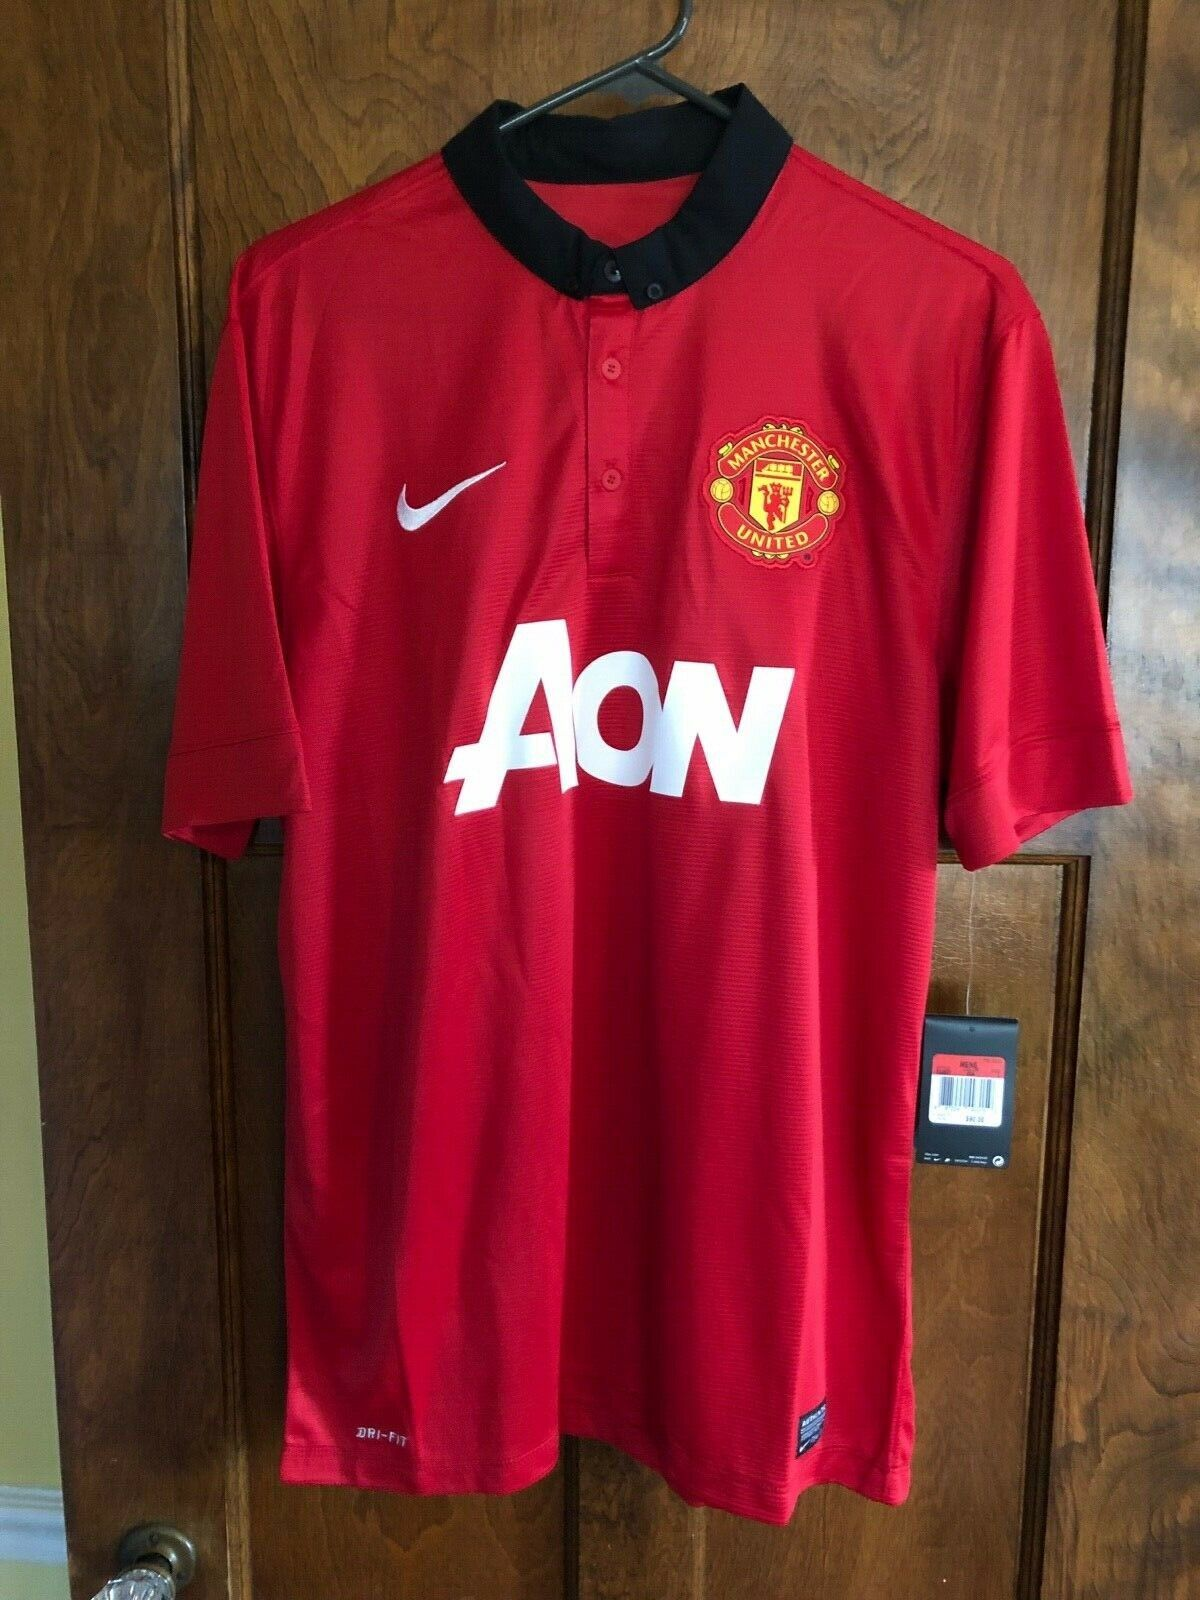 a3279795a NIKE DRI-FIT NWT MEN LARGE MANCHESTER UNITED POLO SHIRT AON MLS SOCCER  FUTBOL